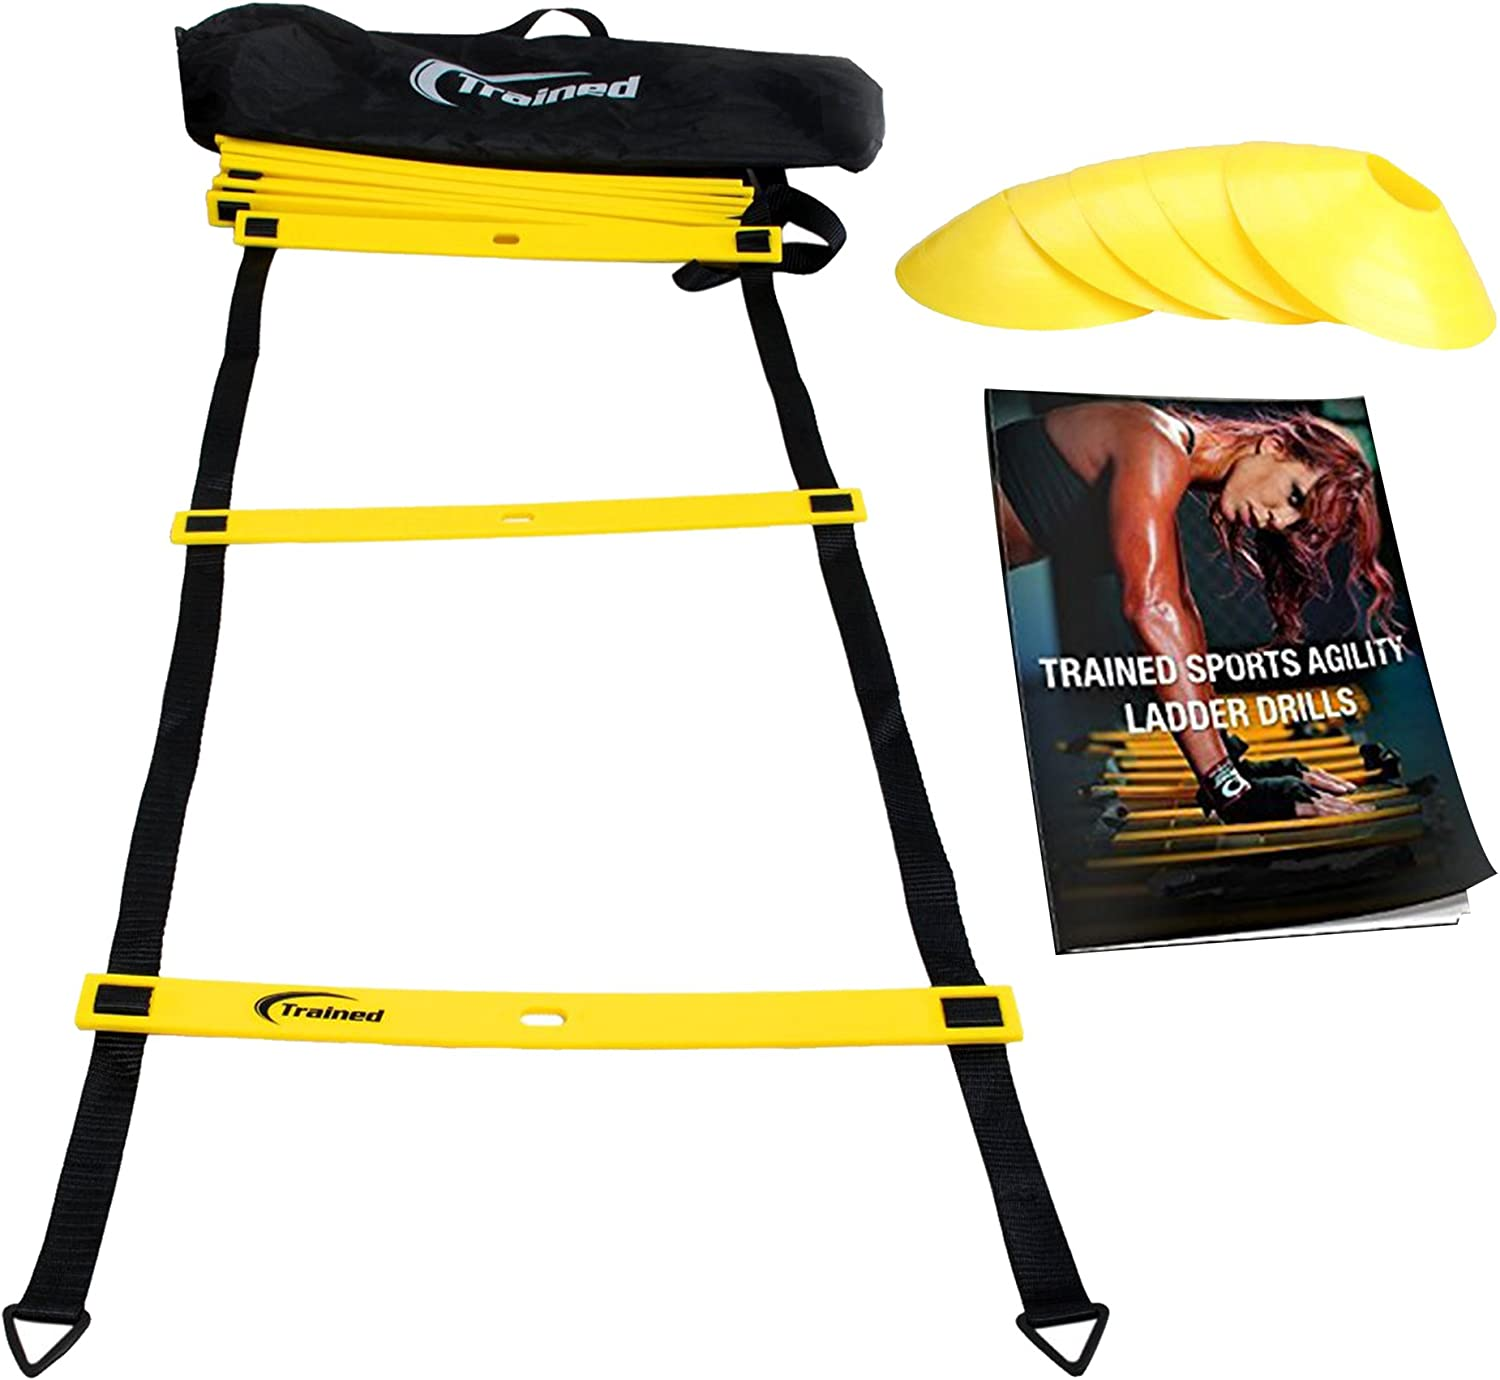 Trained Agility Ladder Bundle 6 Sports Cones, Agility Drills eBook and Carry Case : Sports & Outdoors